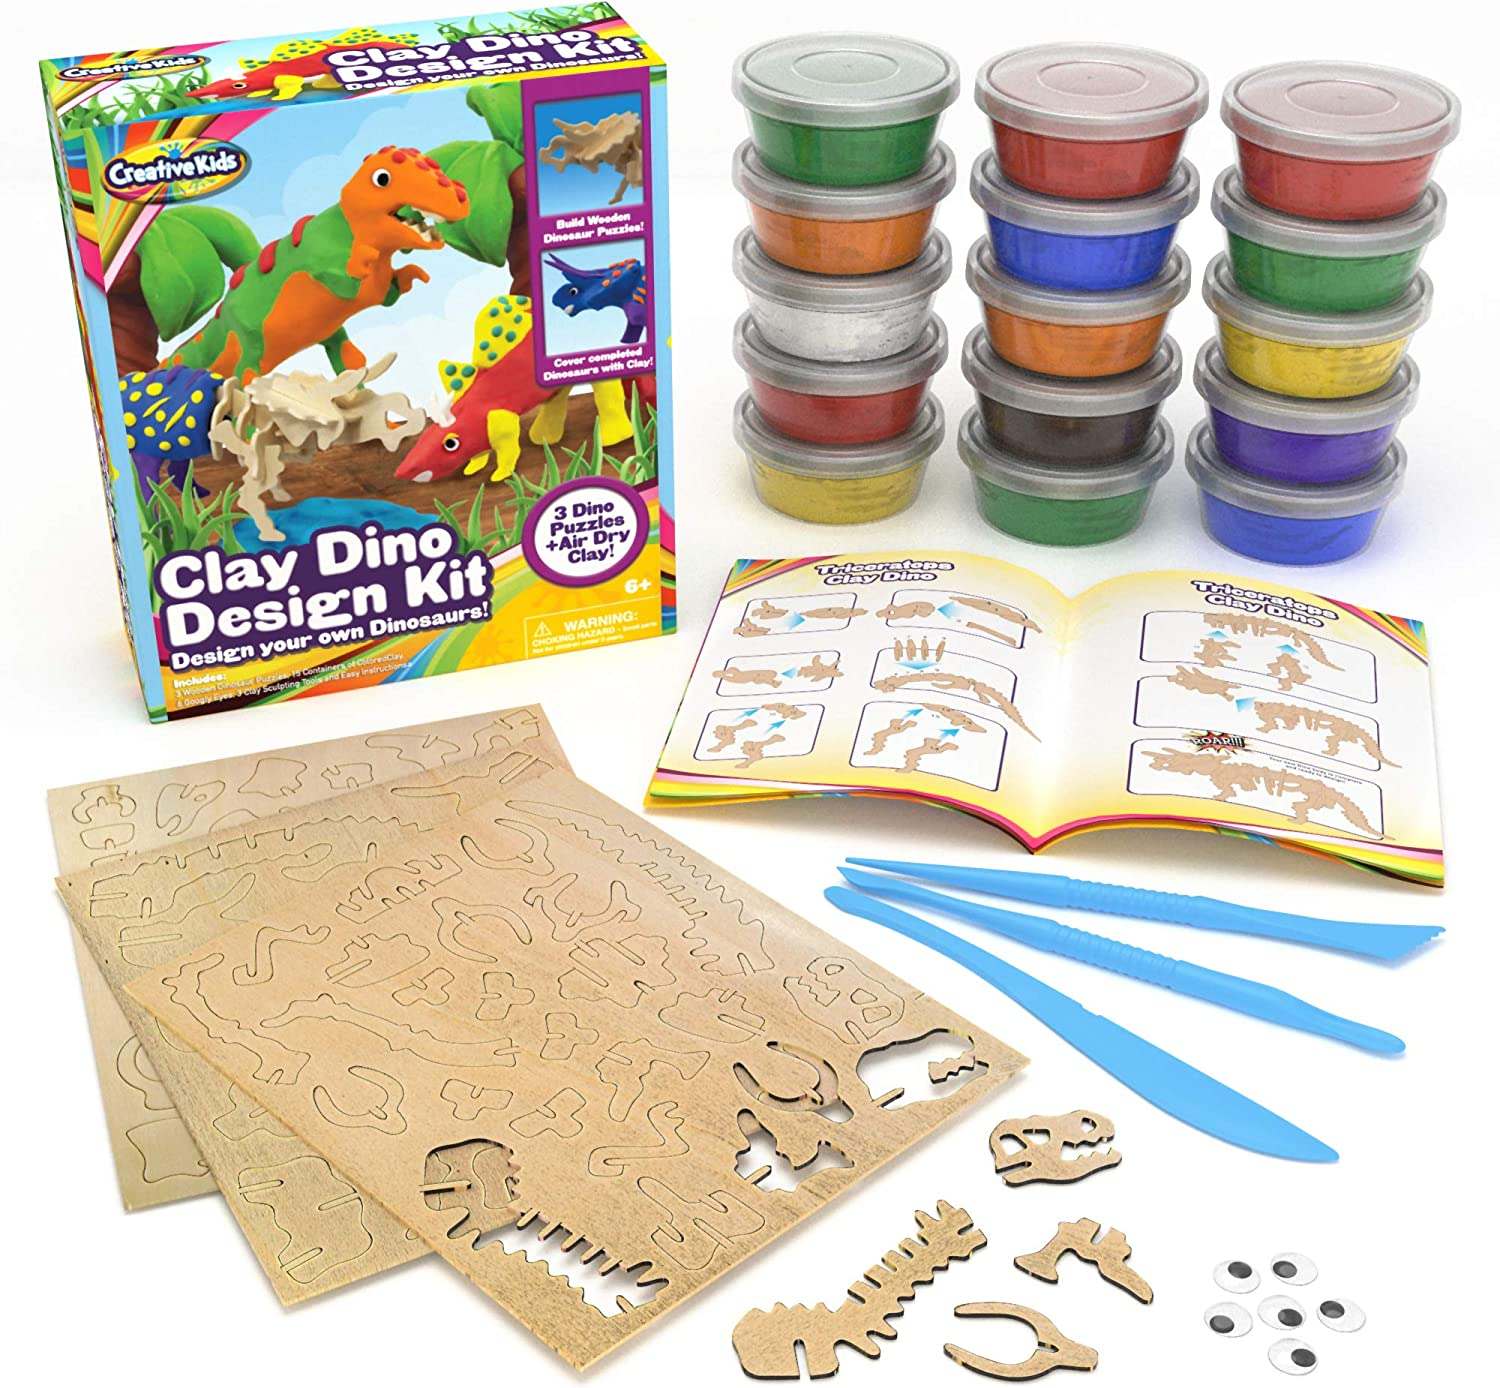 Build Your Own Dinosaur Models w/ Air Dry Modeling Clay - Boys Arts Crafts Set for Kids - 3 x 3D Dino Puzzles with 15 x Molding Modelling Clay - STEM Educational Set - Birthday Gift for Boys